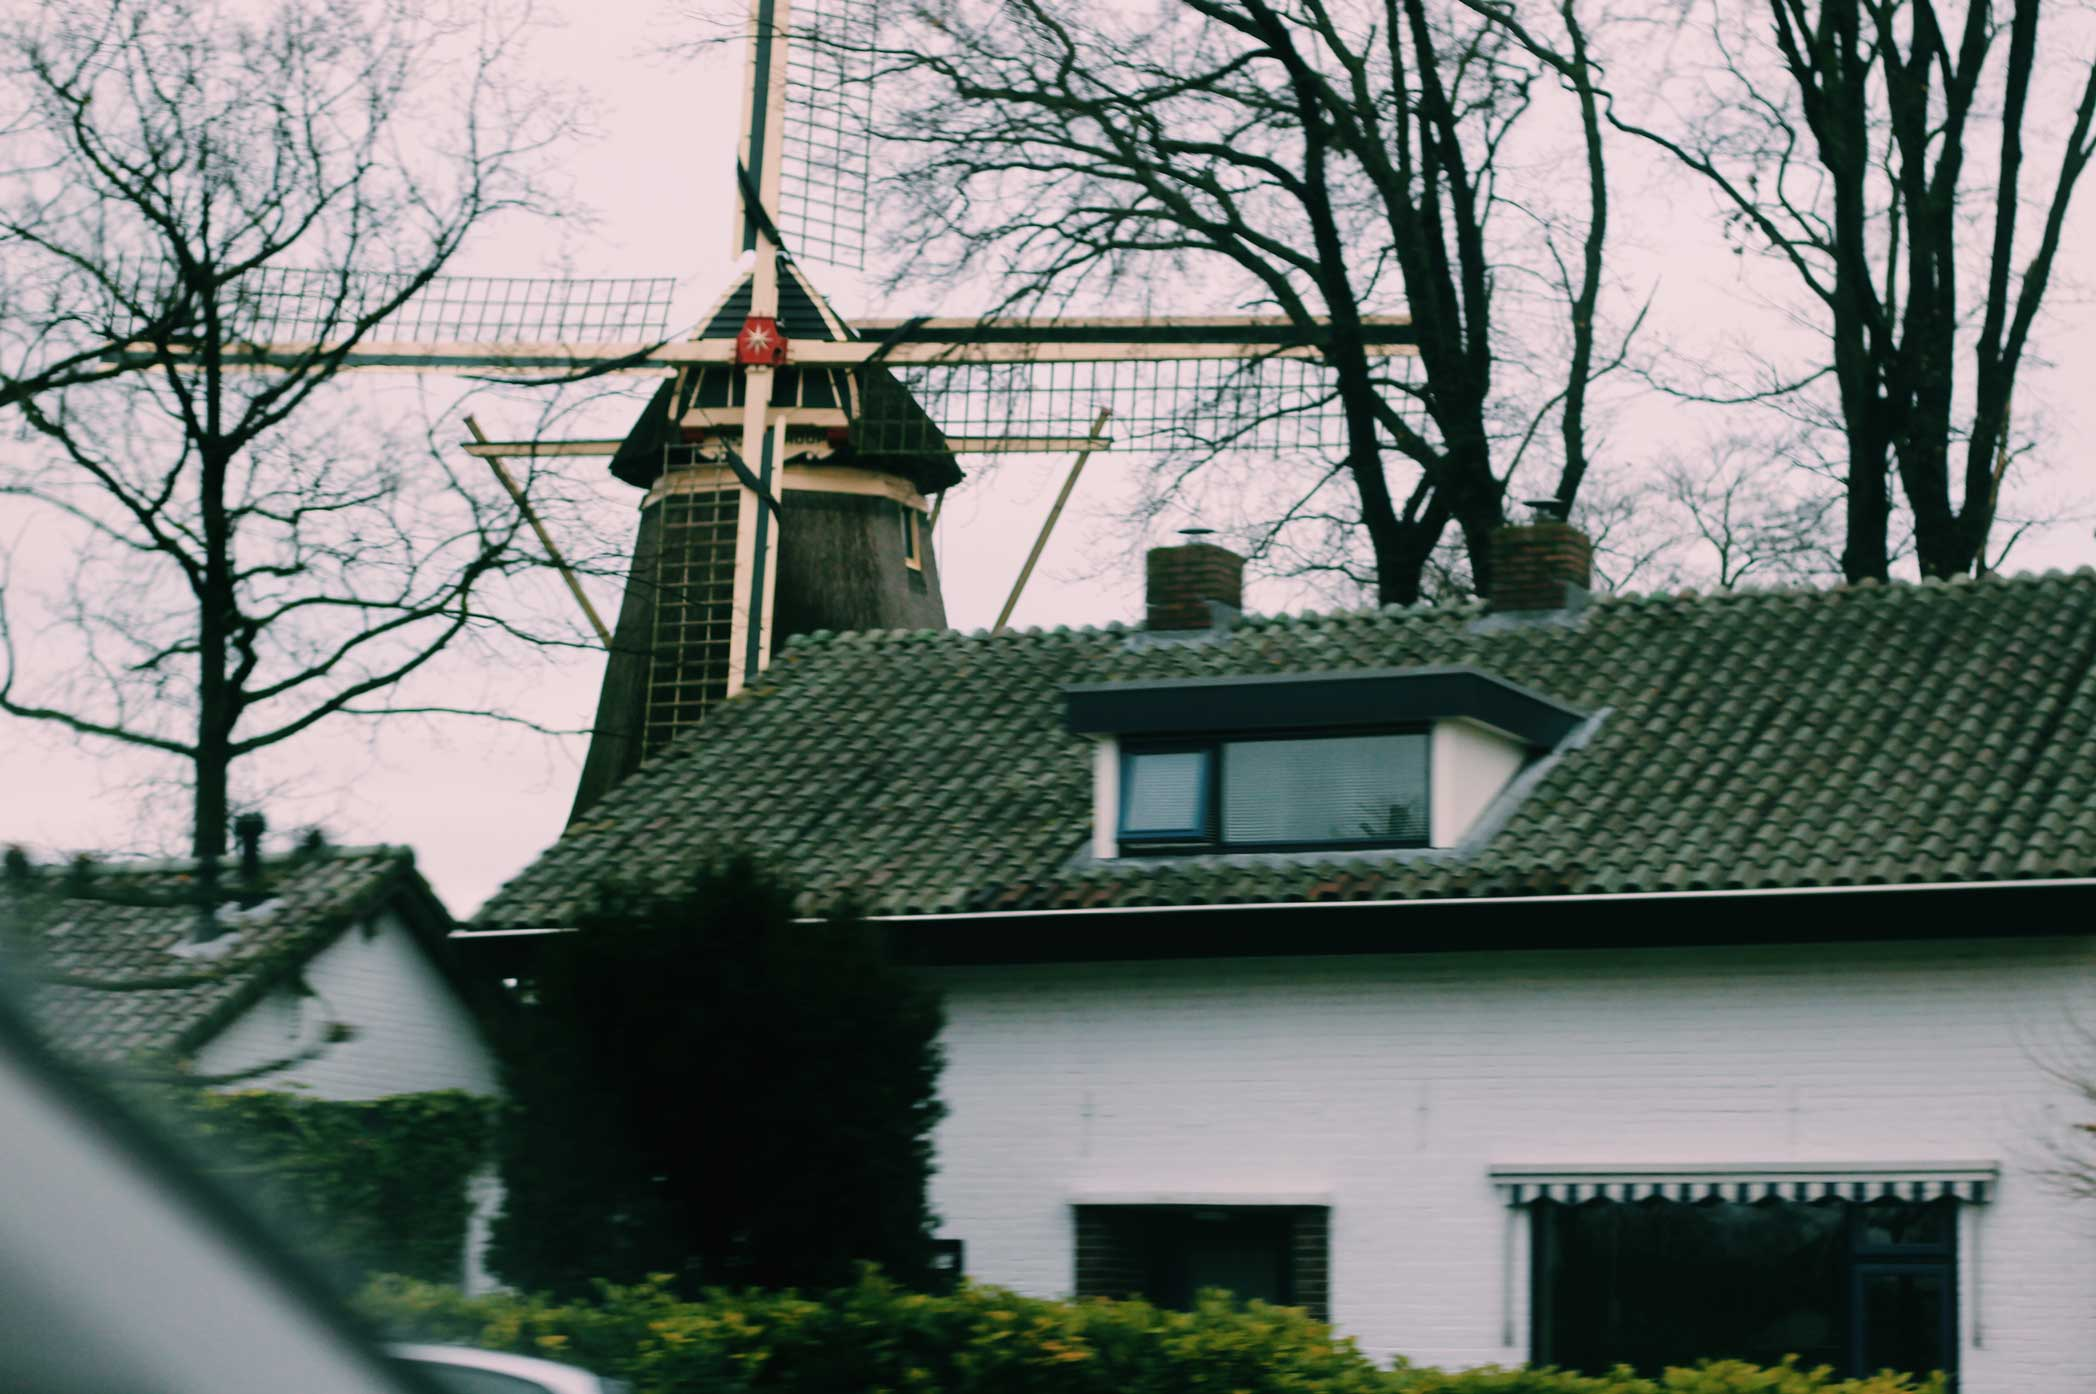 Oosterwolde, The Netherlands - ROGUE365 - The Good Rogue